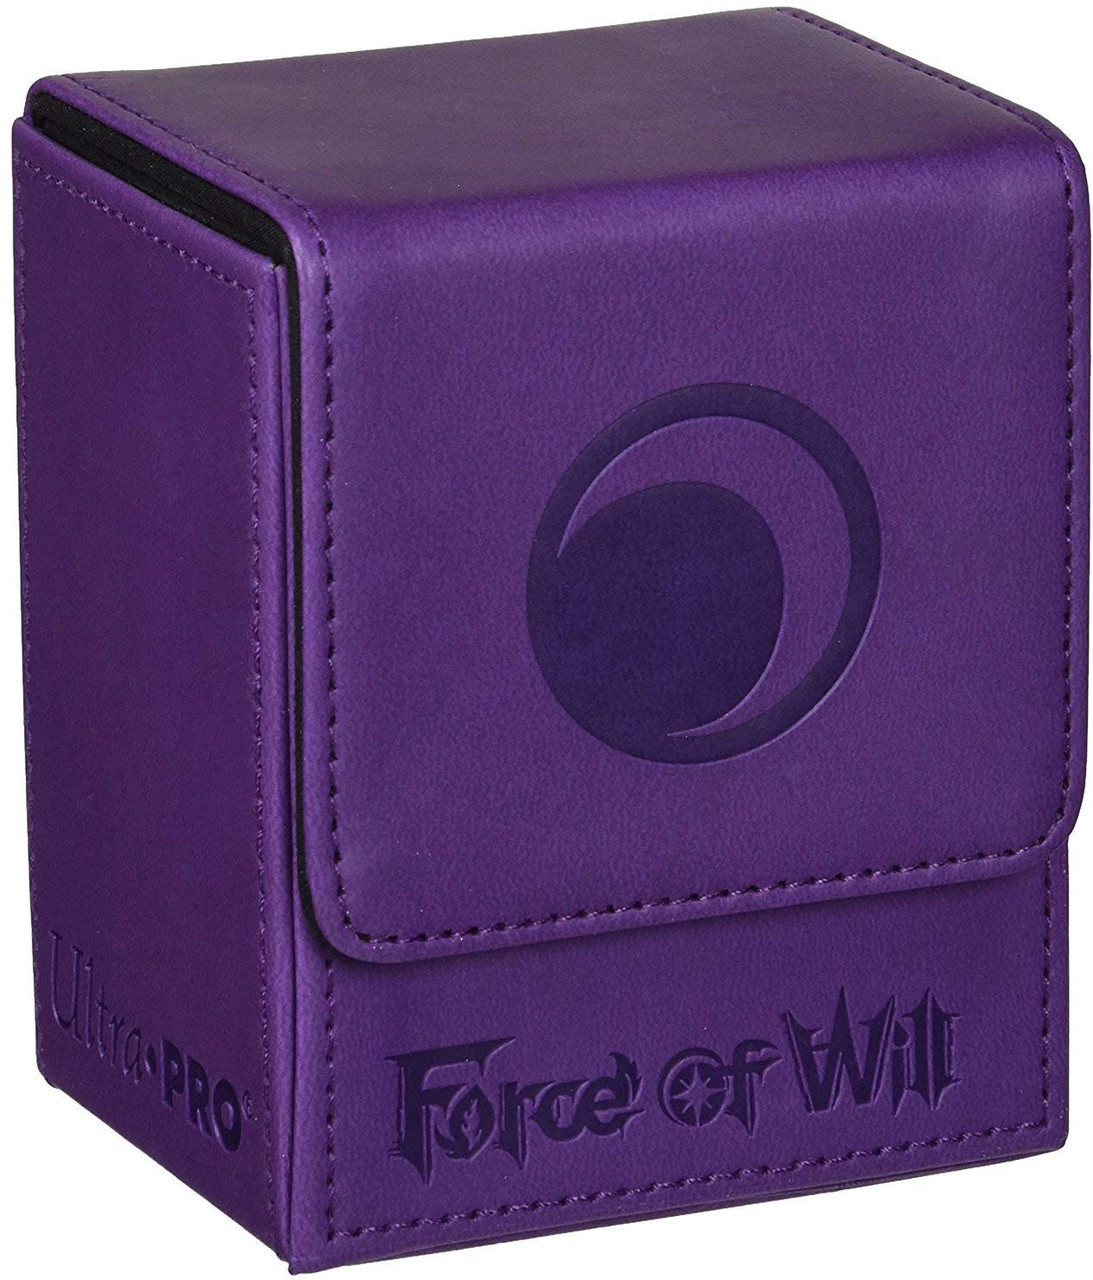 Force of Will Flip Box - Darkness (Purple) - - Special Order